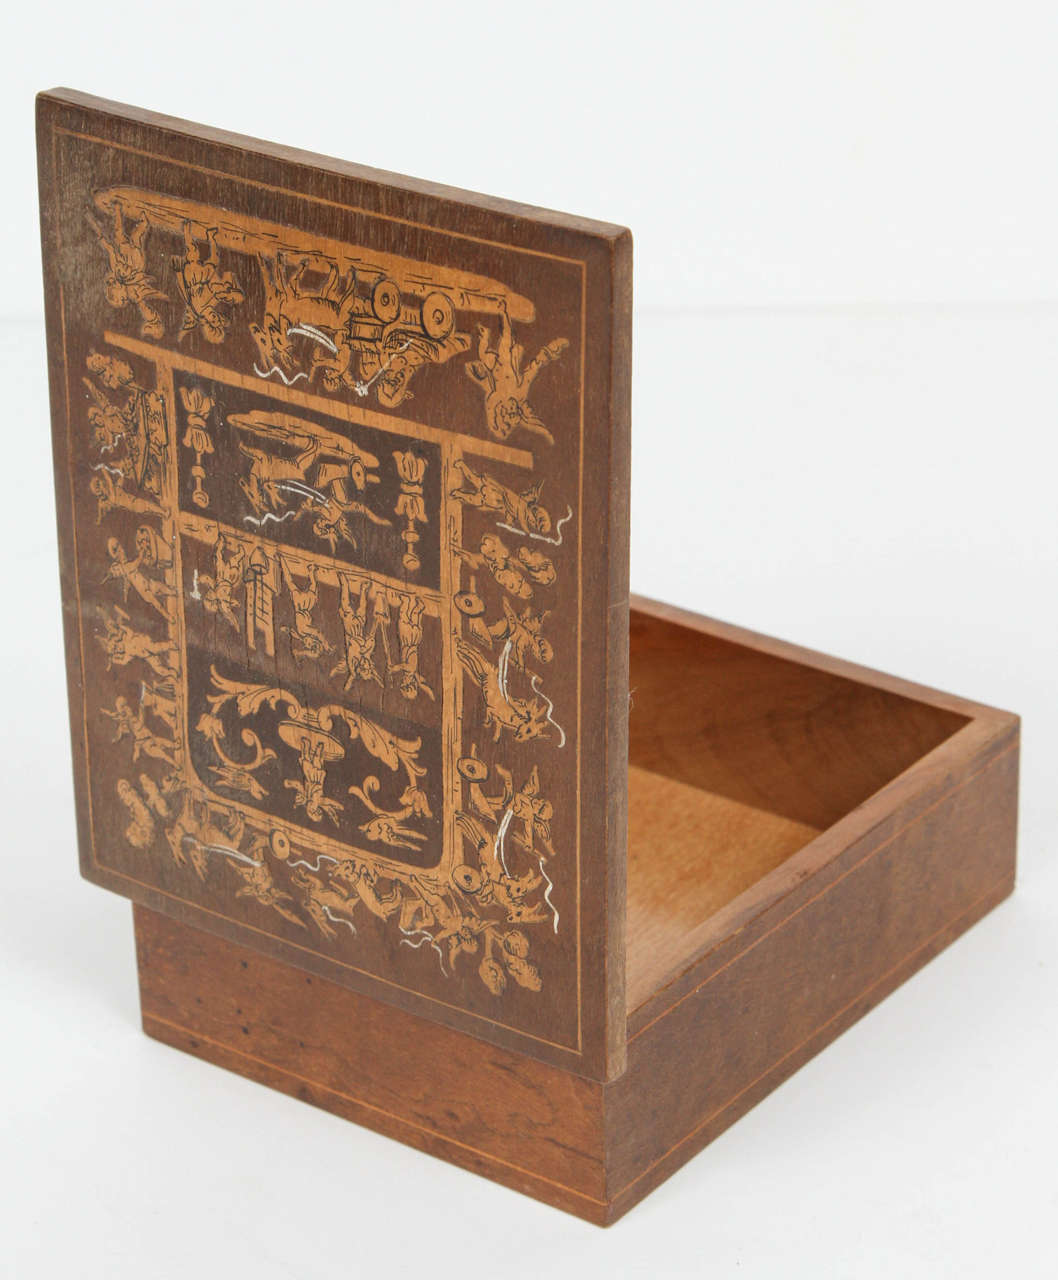 20th Century 19th Century French Inlay Wooden Cigarette Box For Sale